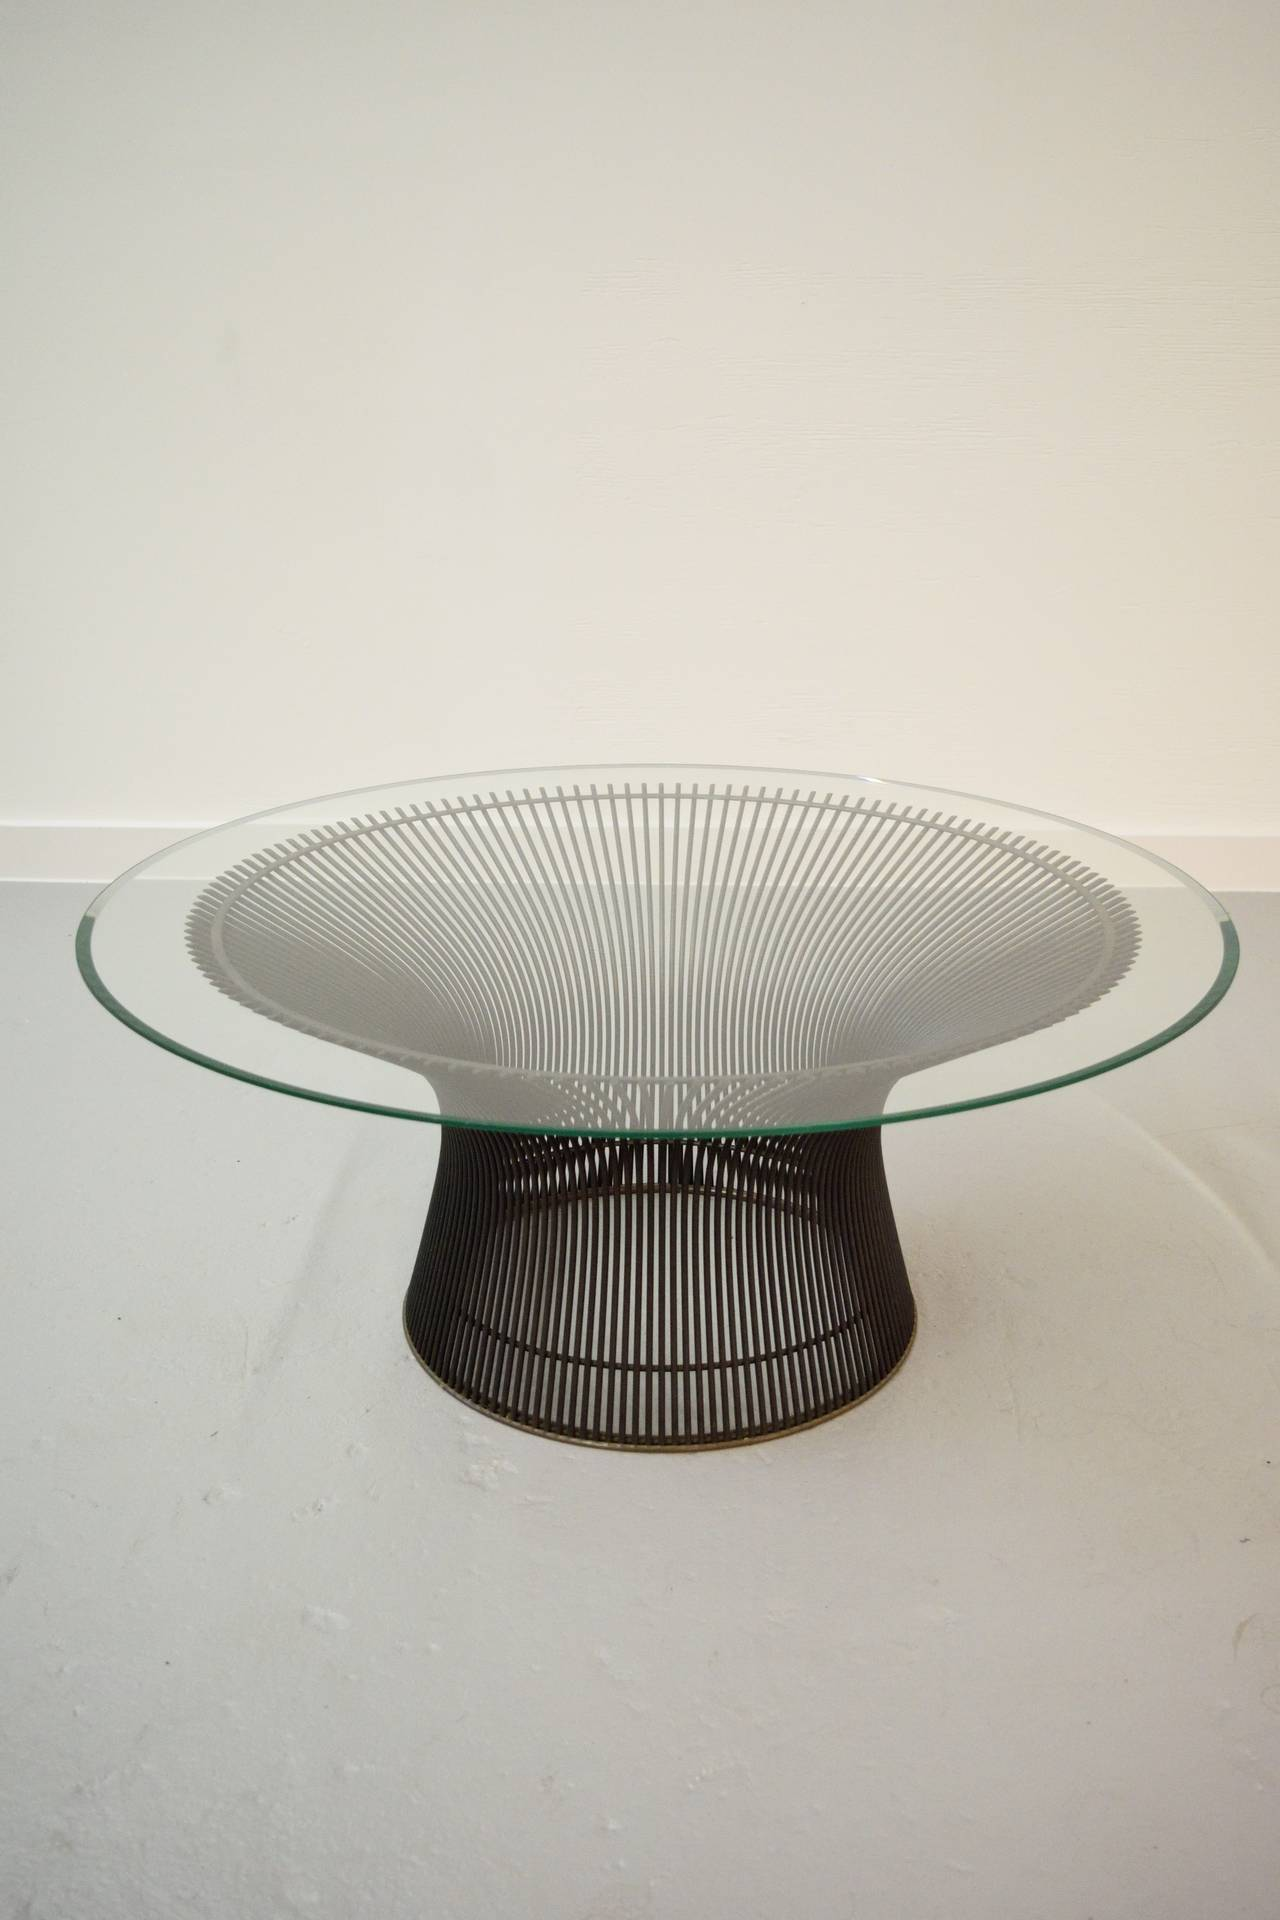 warren platner bronze coffee table for sale at 1stdibs